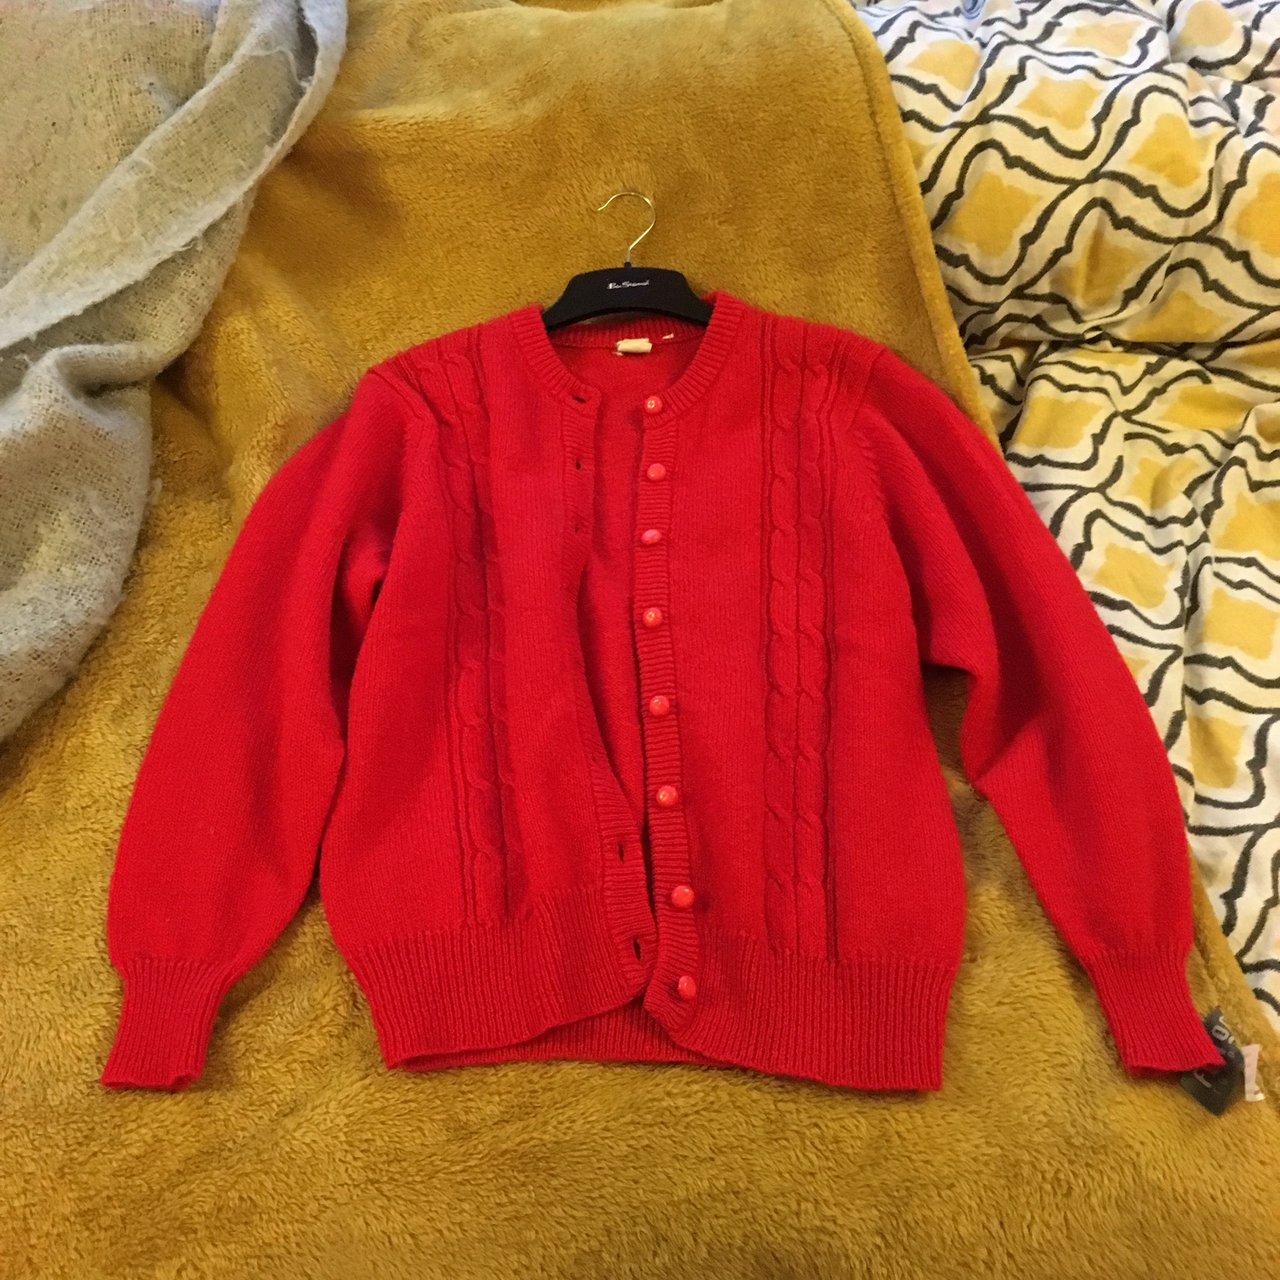 563b8f94af 100% wool vintage red cardigan. Adorable and super cosy. - Depop